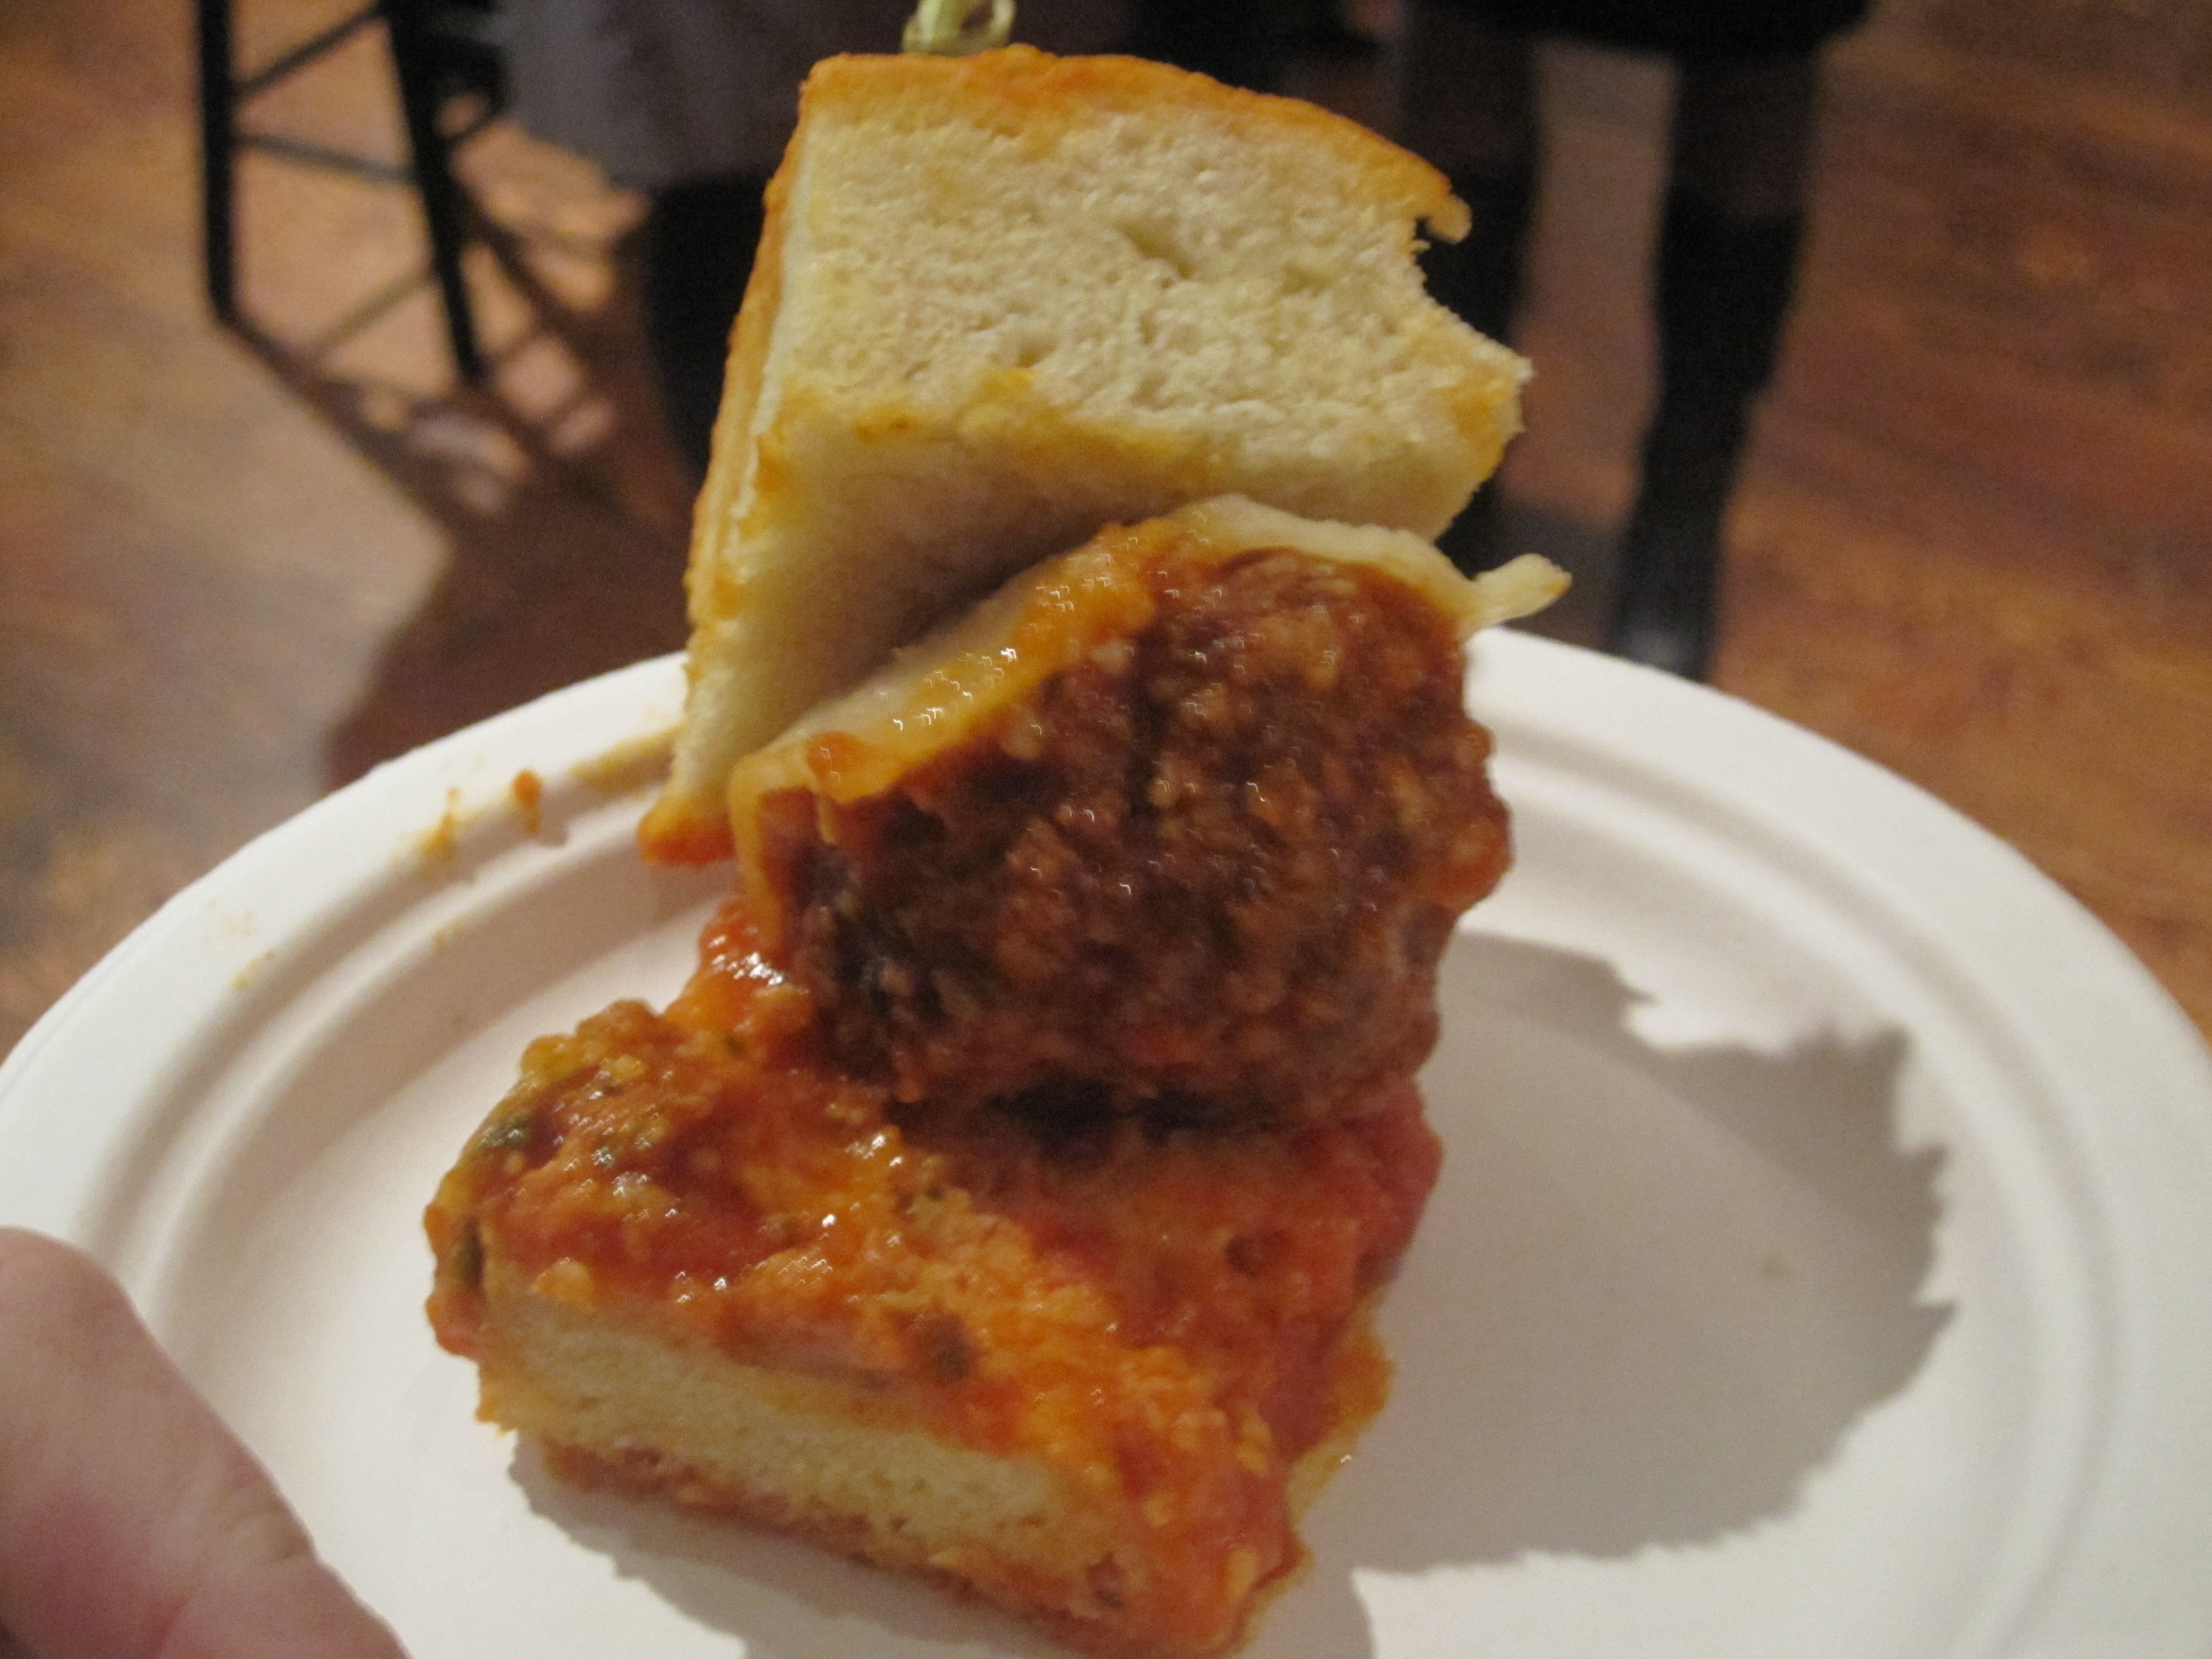 The winning meatball was finger-licking good.